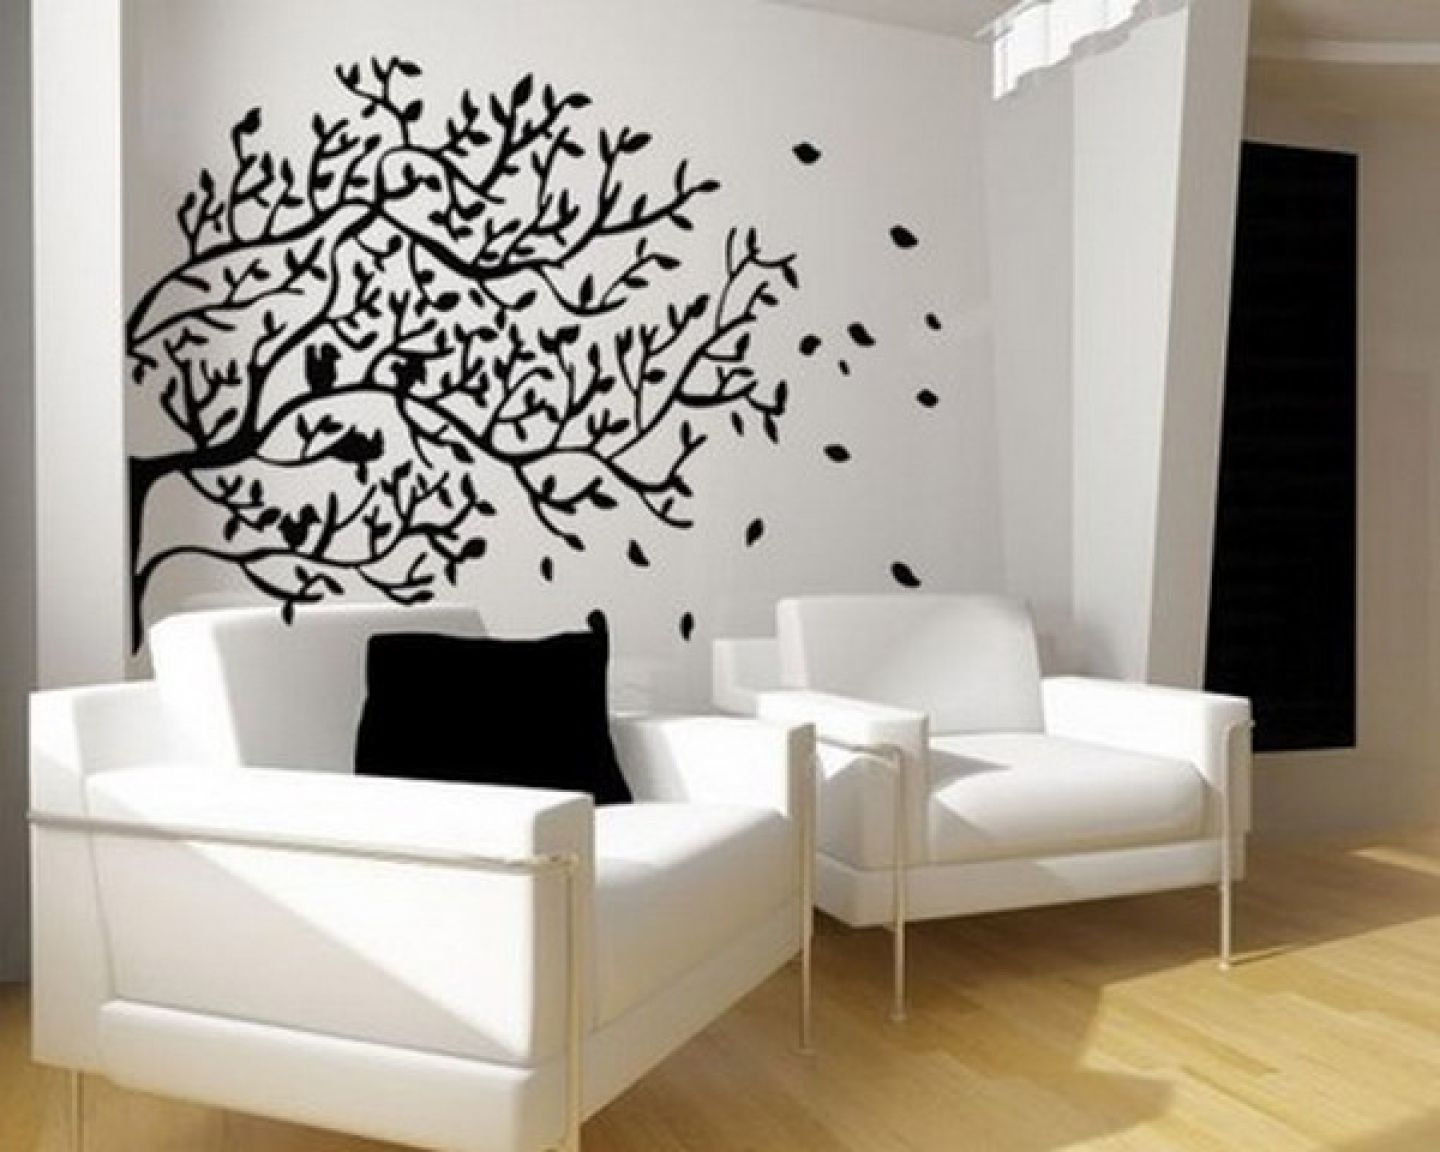 Luxury living room tree wall murals sticker decorations image ethanspiration pinterest - Feature bedroom wall ideas ...